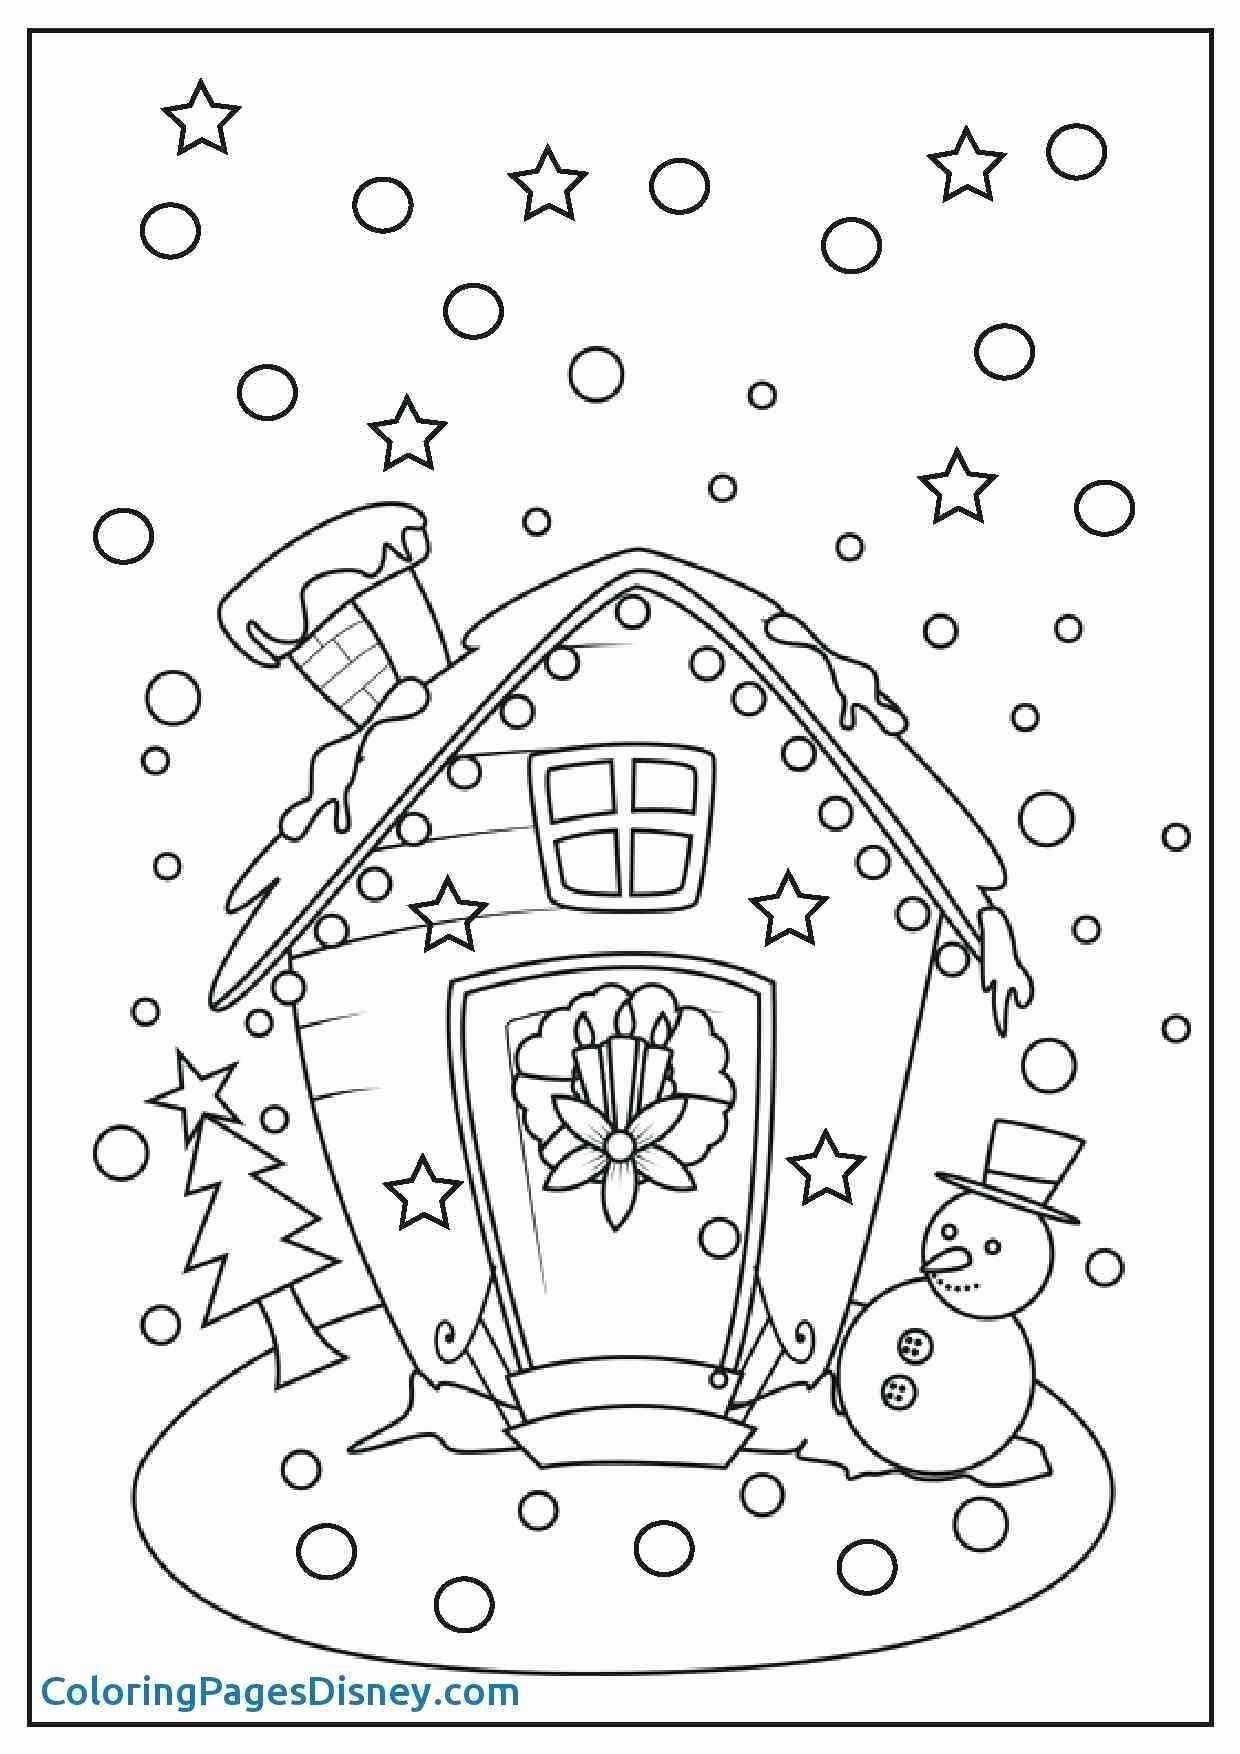 T For Tree Coloring Page Best Of Luxury Grinch Heart Coloring Page Printable Christmas Coloring Pages Free Christmas Coloring Pages Christmas Coloring Sheets